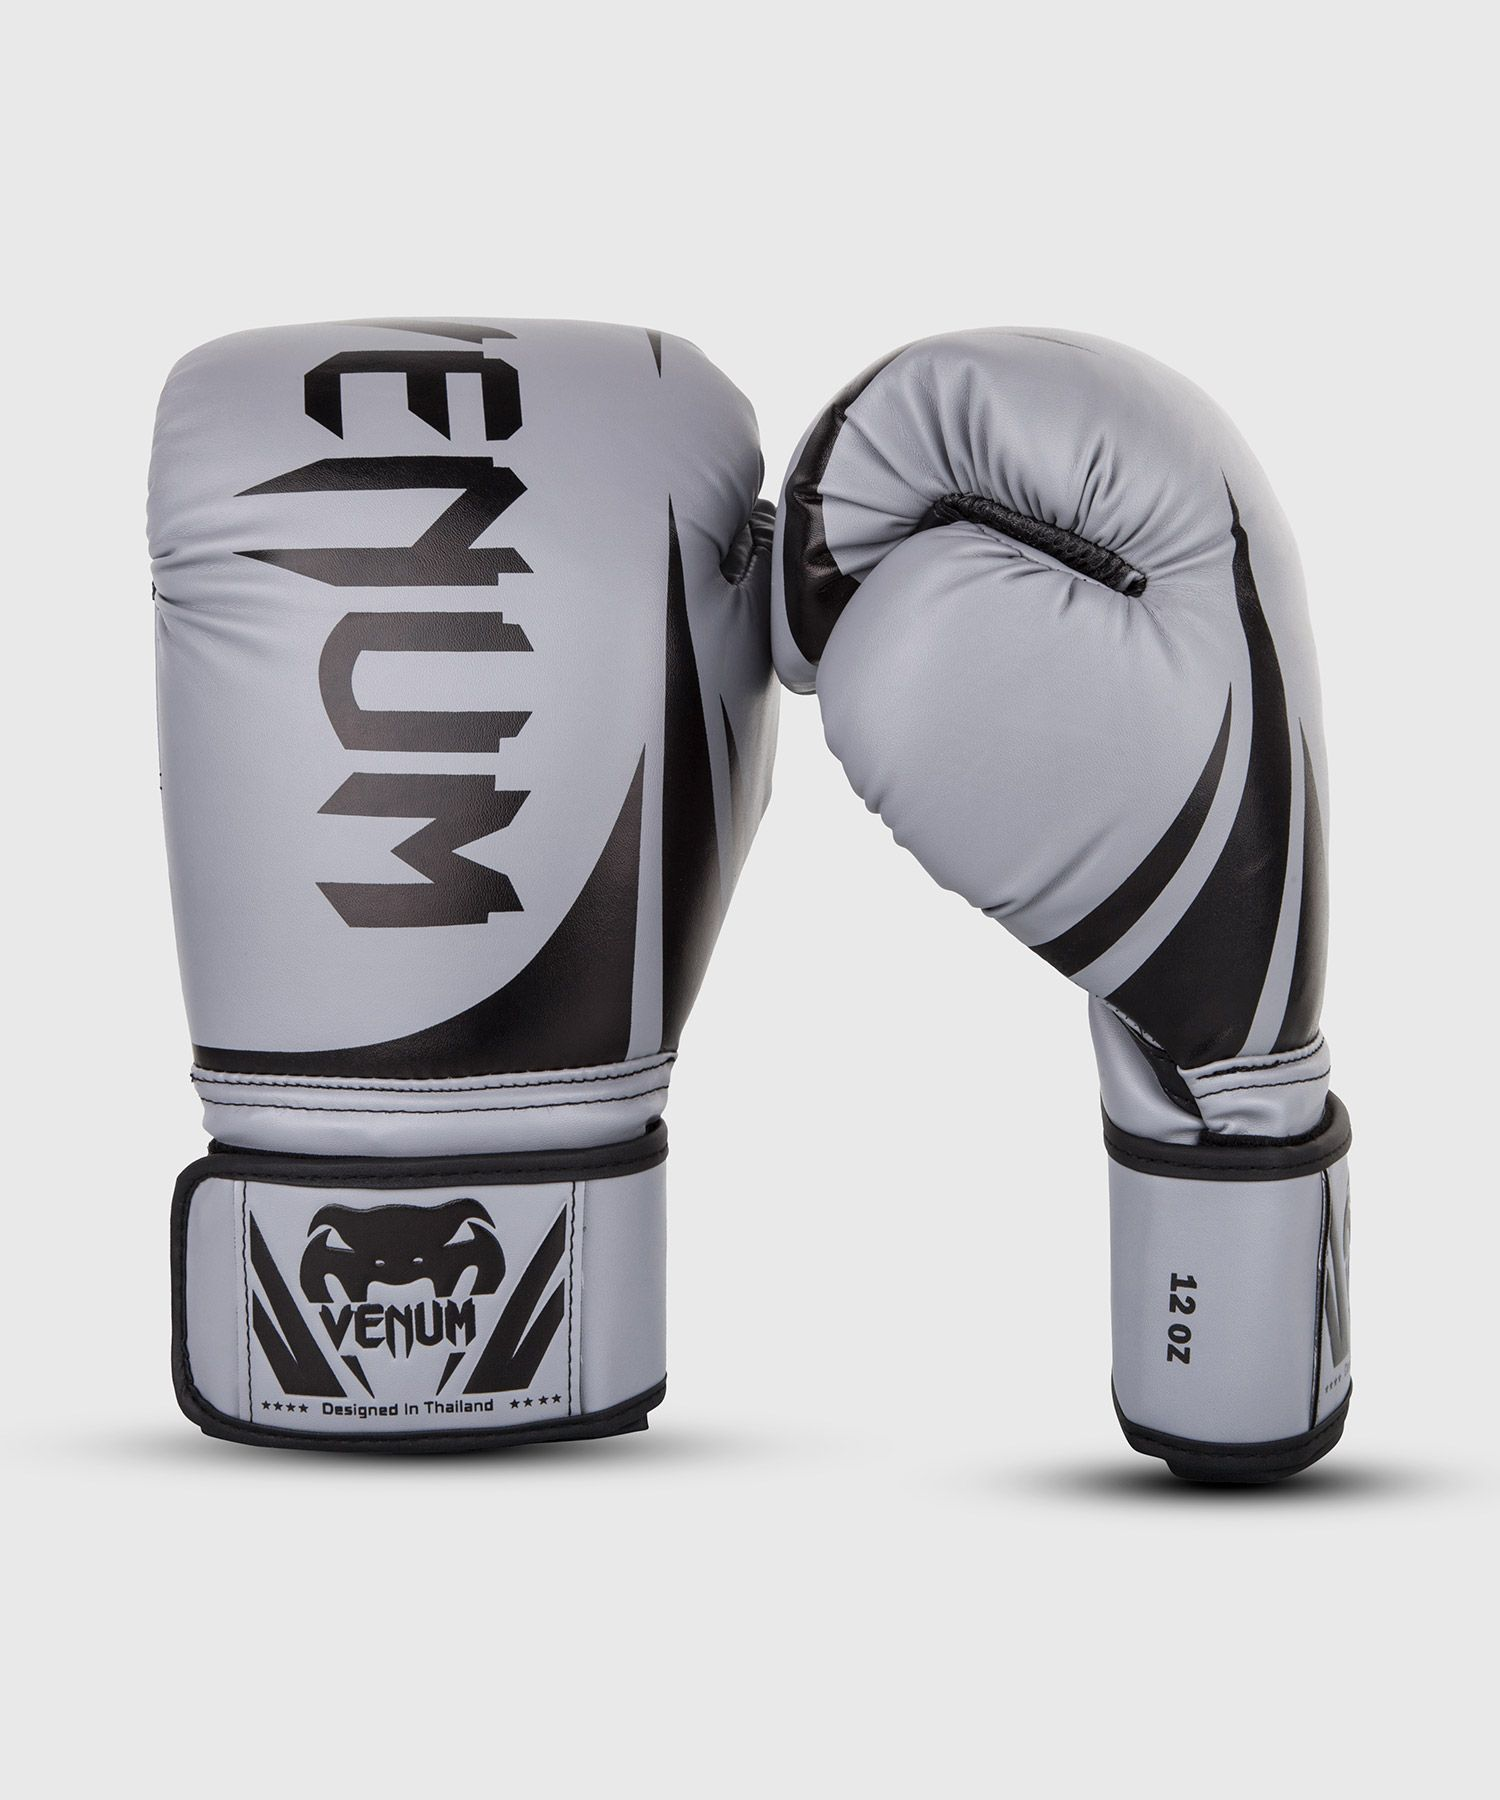 Venum Challenger 2.0 Boxing Gloves - Grey/Black